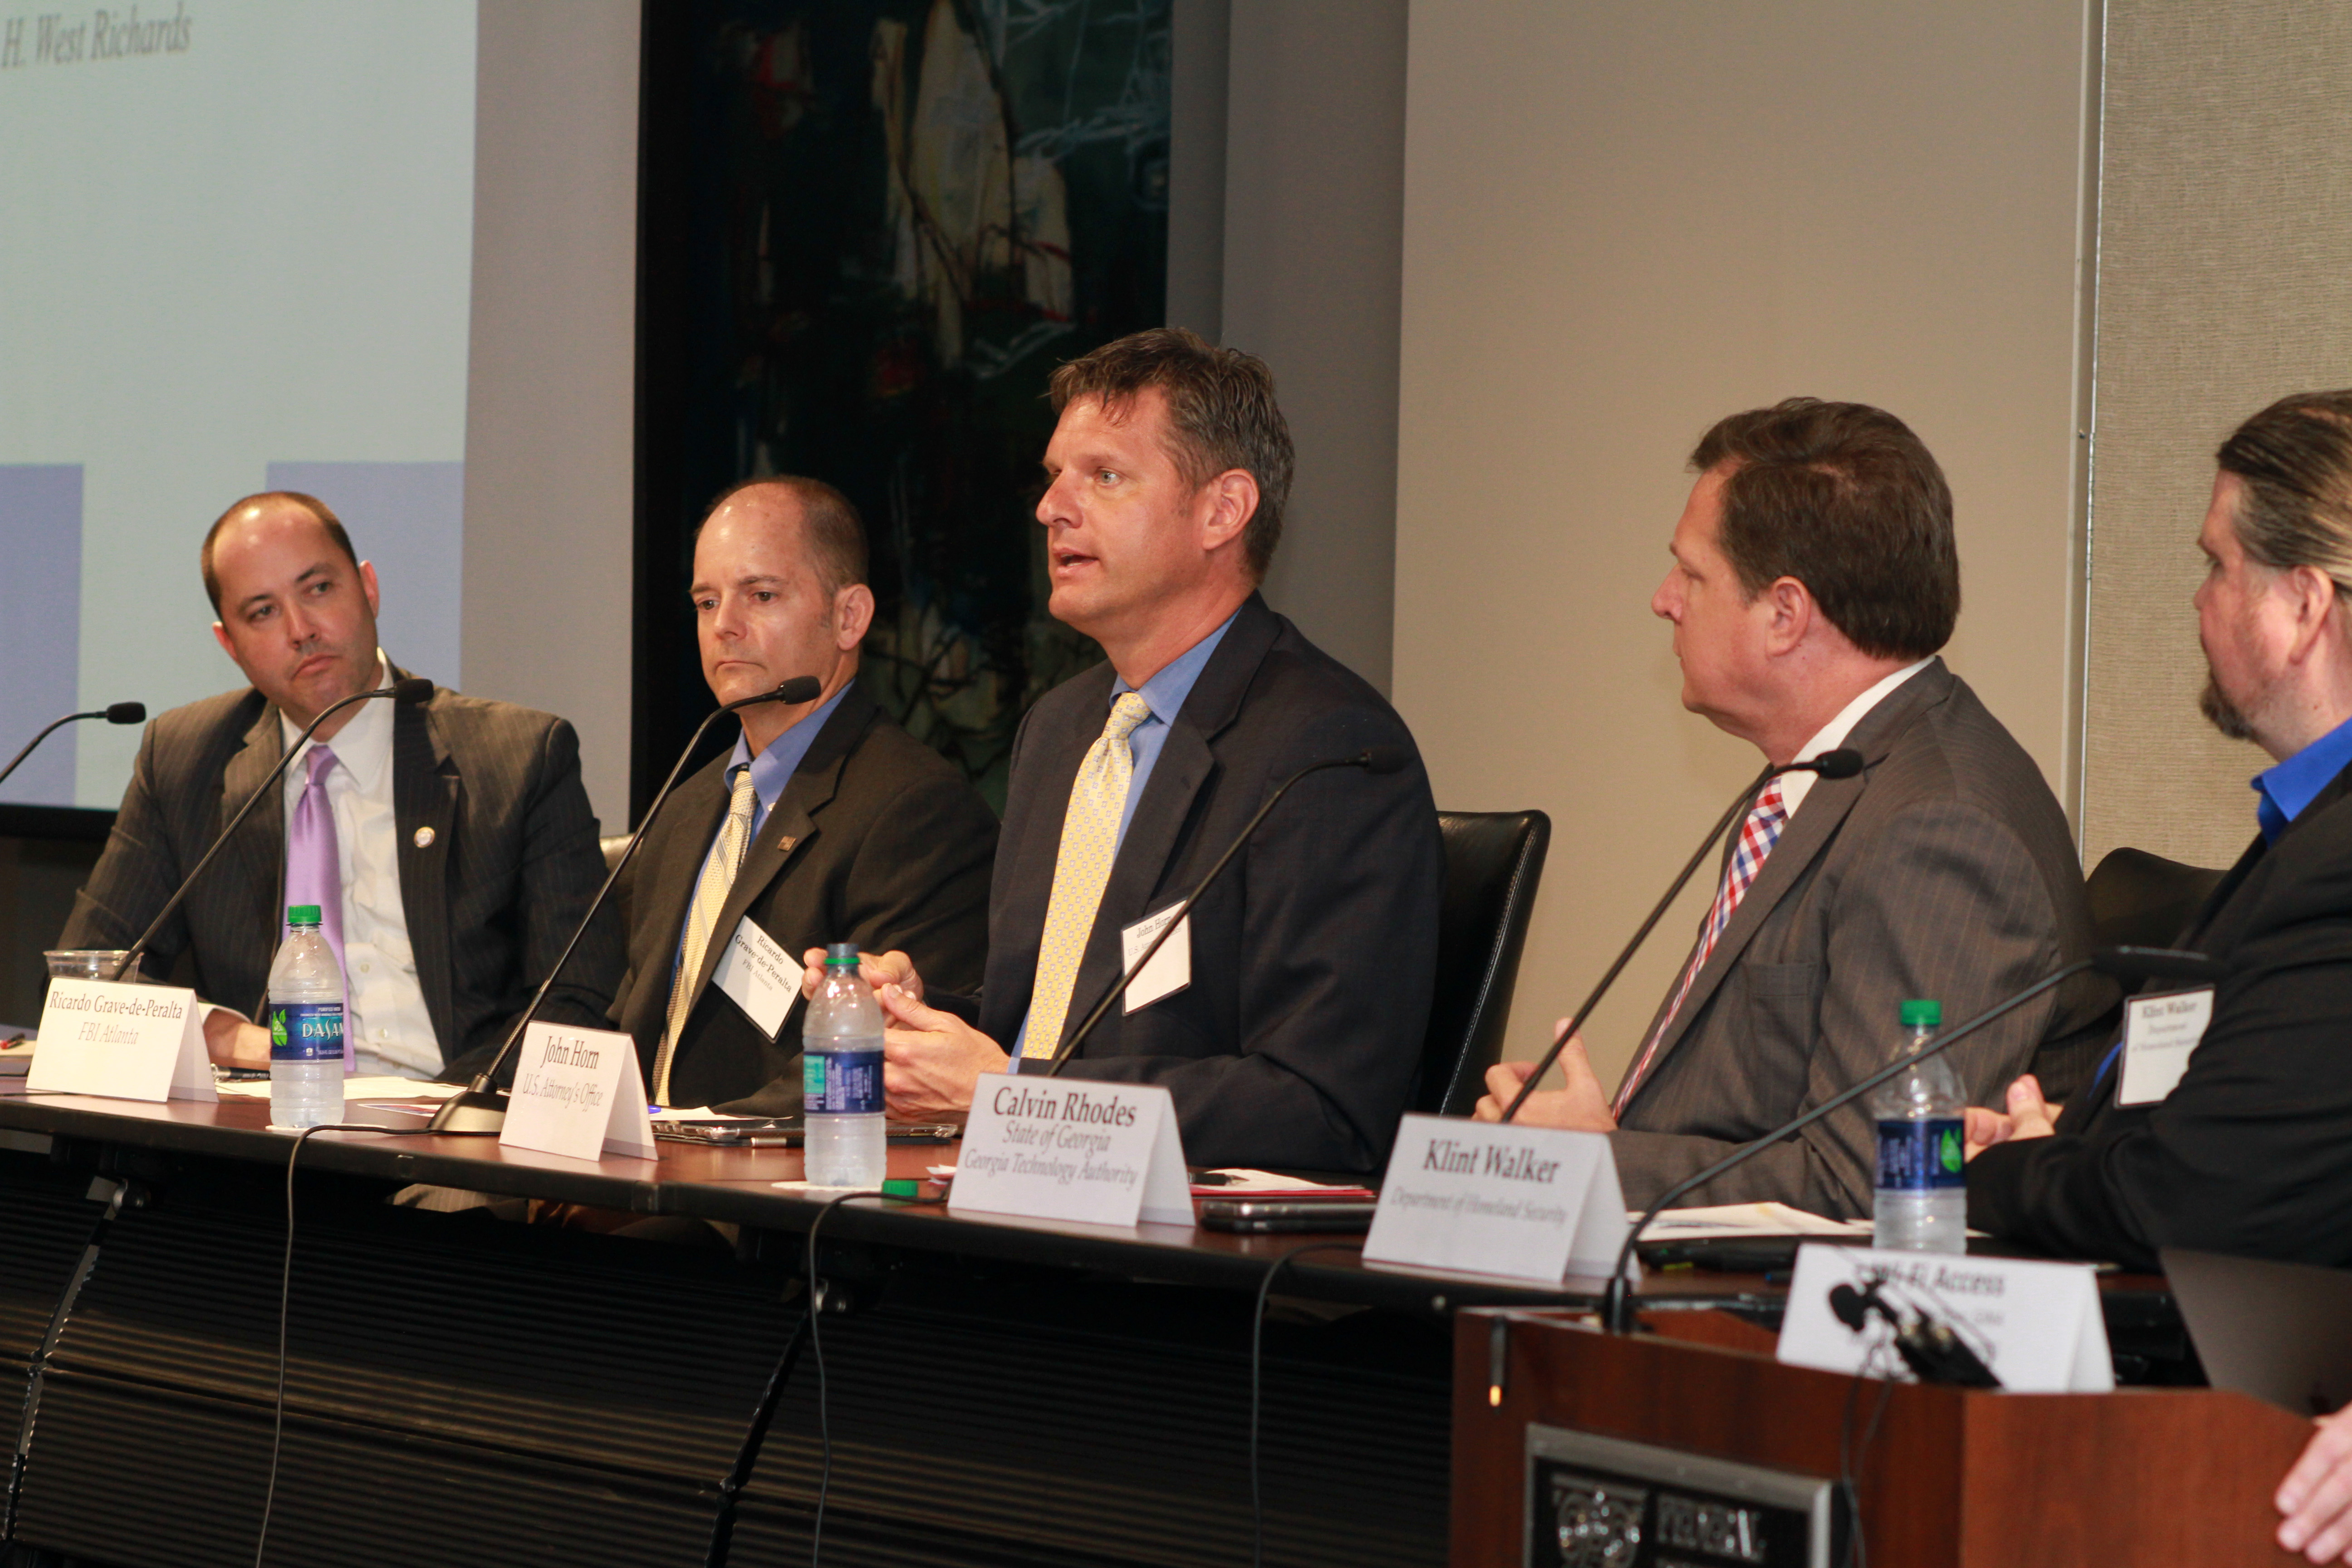 Inaugural Transaction Alley Cyber Forum - ATPC